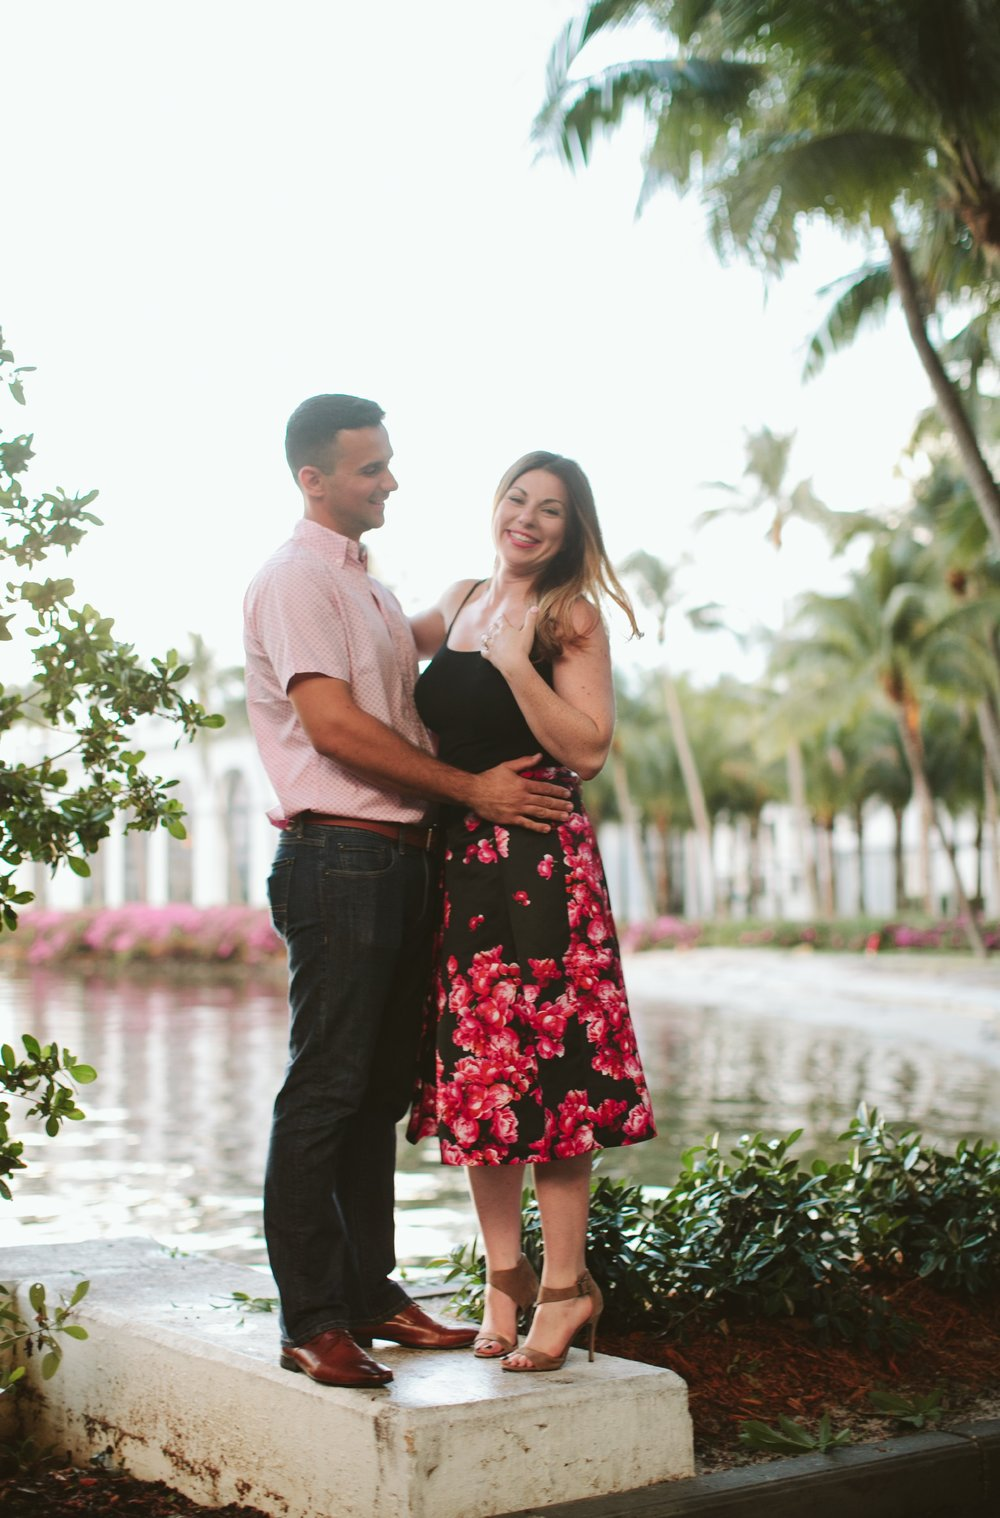 Ida + Danny Surprise Proposal Engagement Shoot at Flagler Museum Palm Beach5.jpg